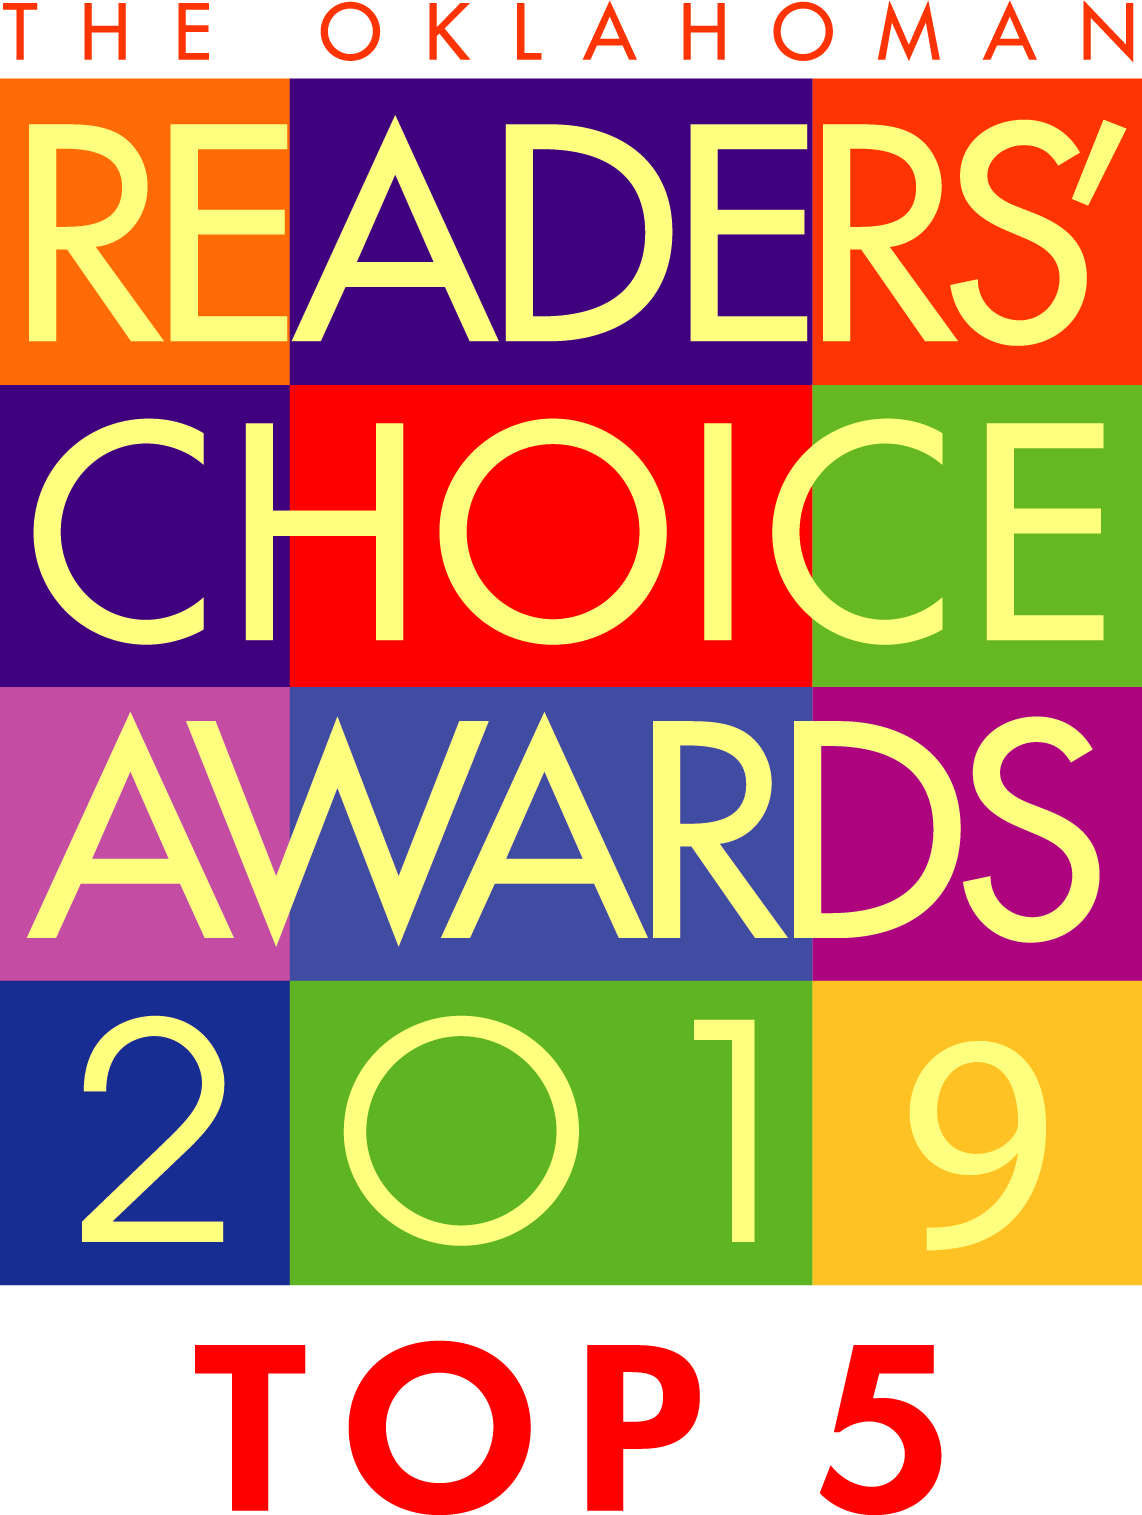 2019 Oklahoman Readers' Choice Top 5